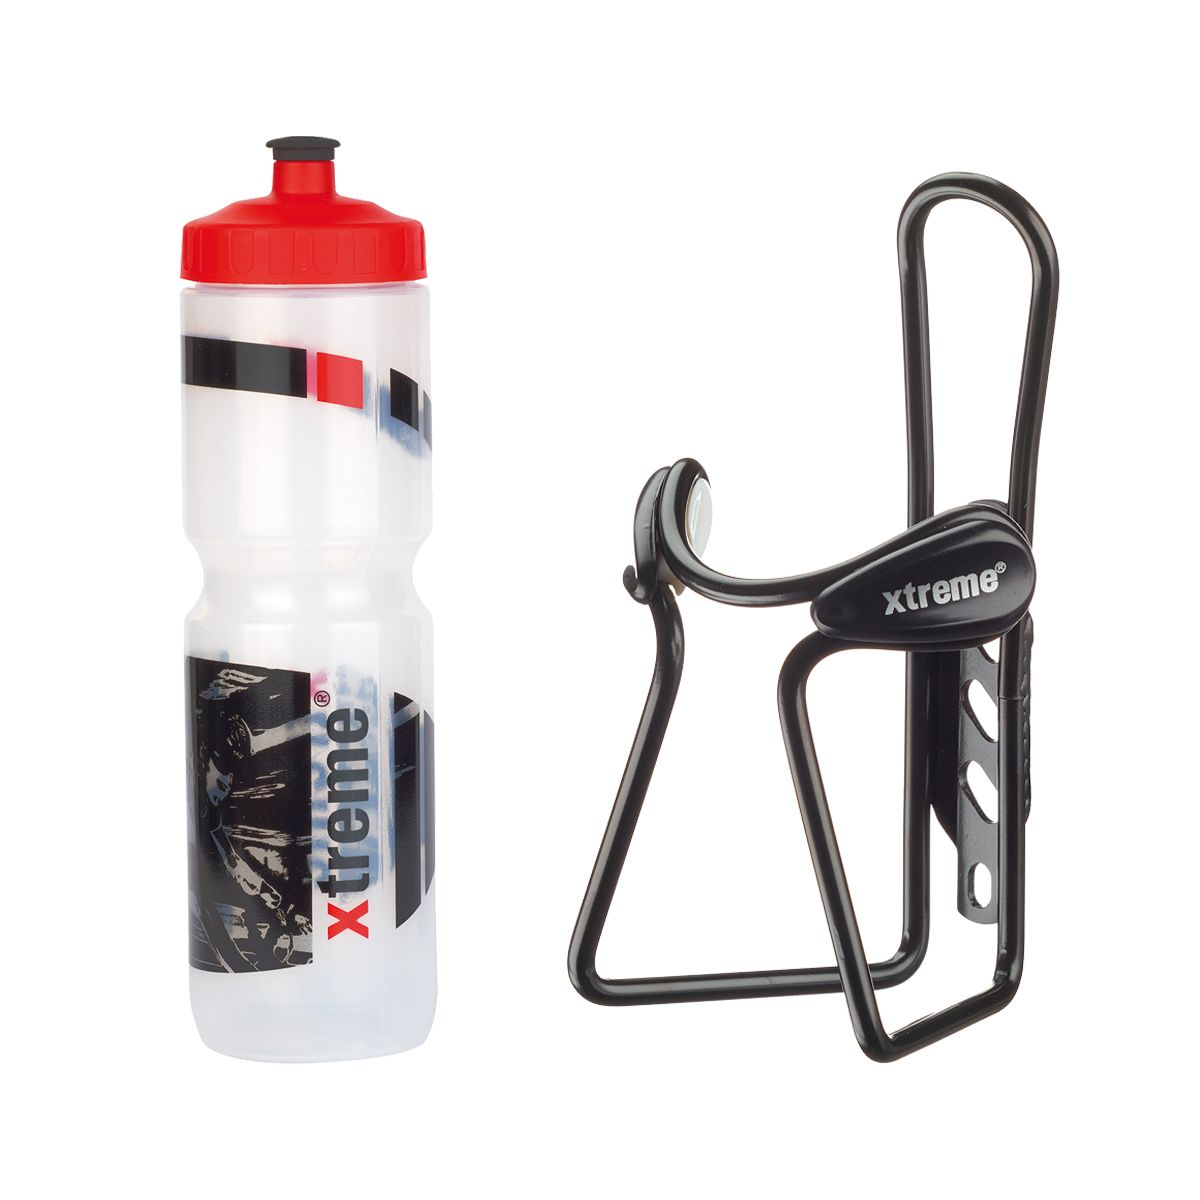 Hobby drinks bottle 1 L + Protector Cage bottle cage